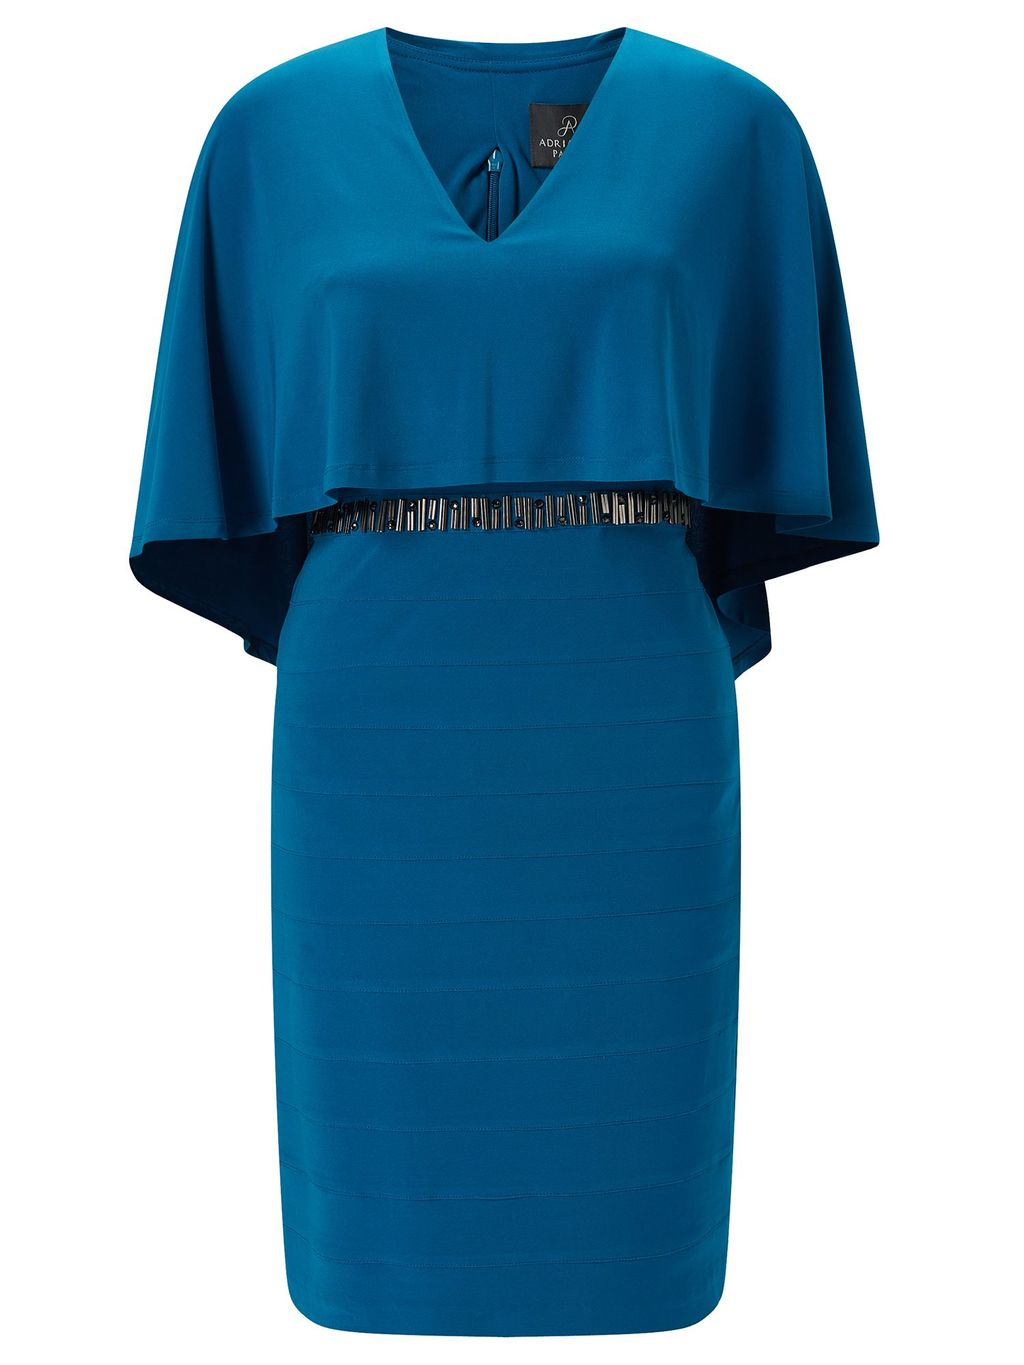 Popover Cape Sleeve Bandeau Dress, Dark Blue - style: shift; neckline: v-neck; sleeve style: angel/waterfall; fit: tailored/fitted; pattern: plain; secondary colour: navy; predominant colour: turquoise; length: on the knee; fibres: polyester/polyamide - 100%; occasions: occasion; sleeve length: half sleeve; pattern type: fabric; texture group: other - light to midweight; embellishment: beading; season: s/s 2016; wardrobe: event